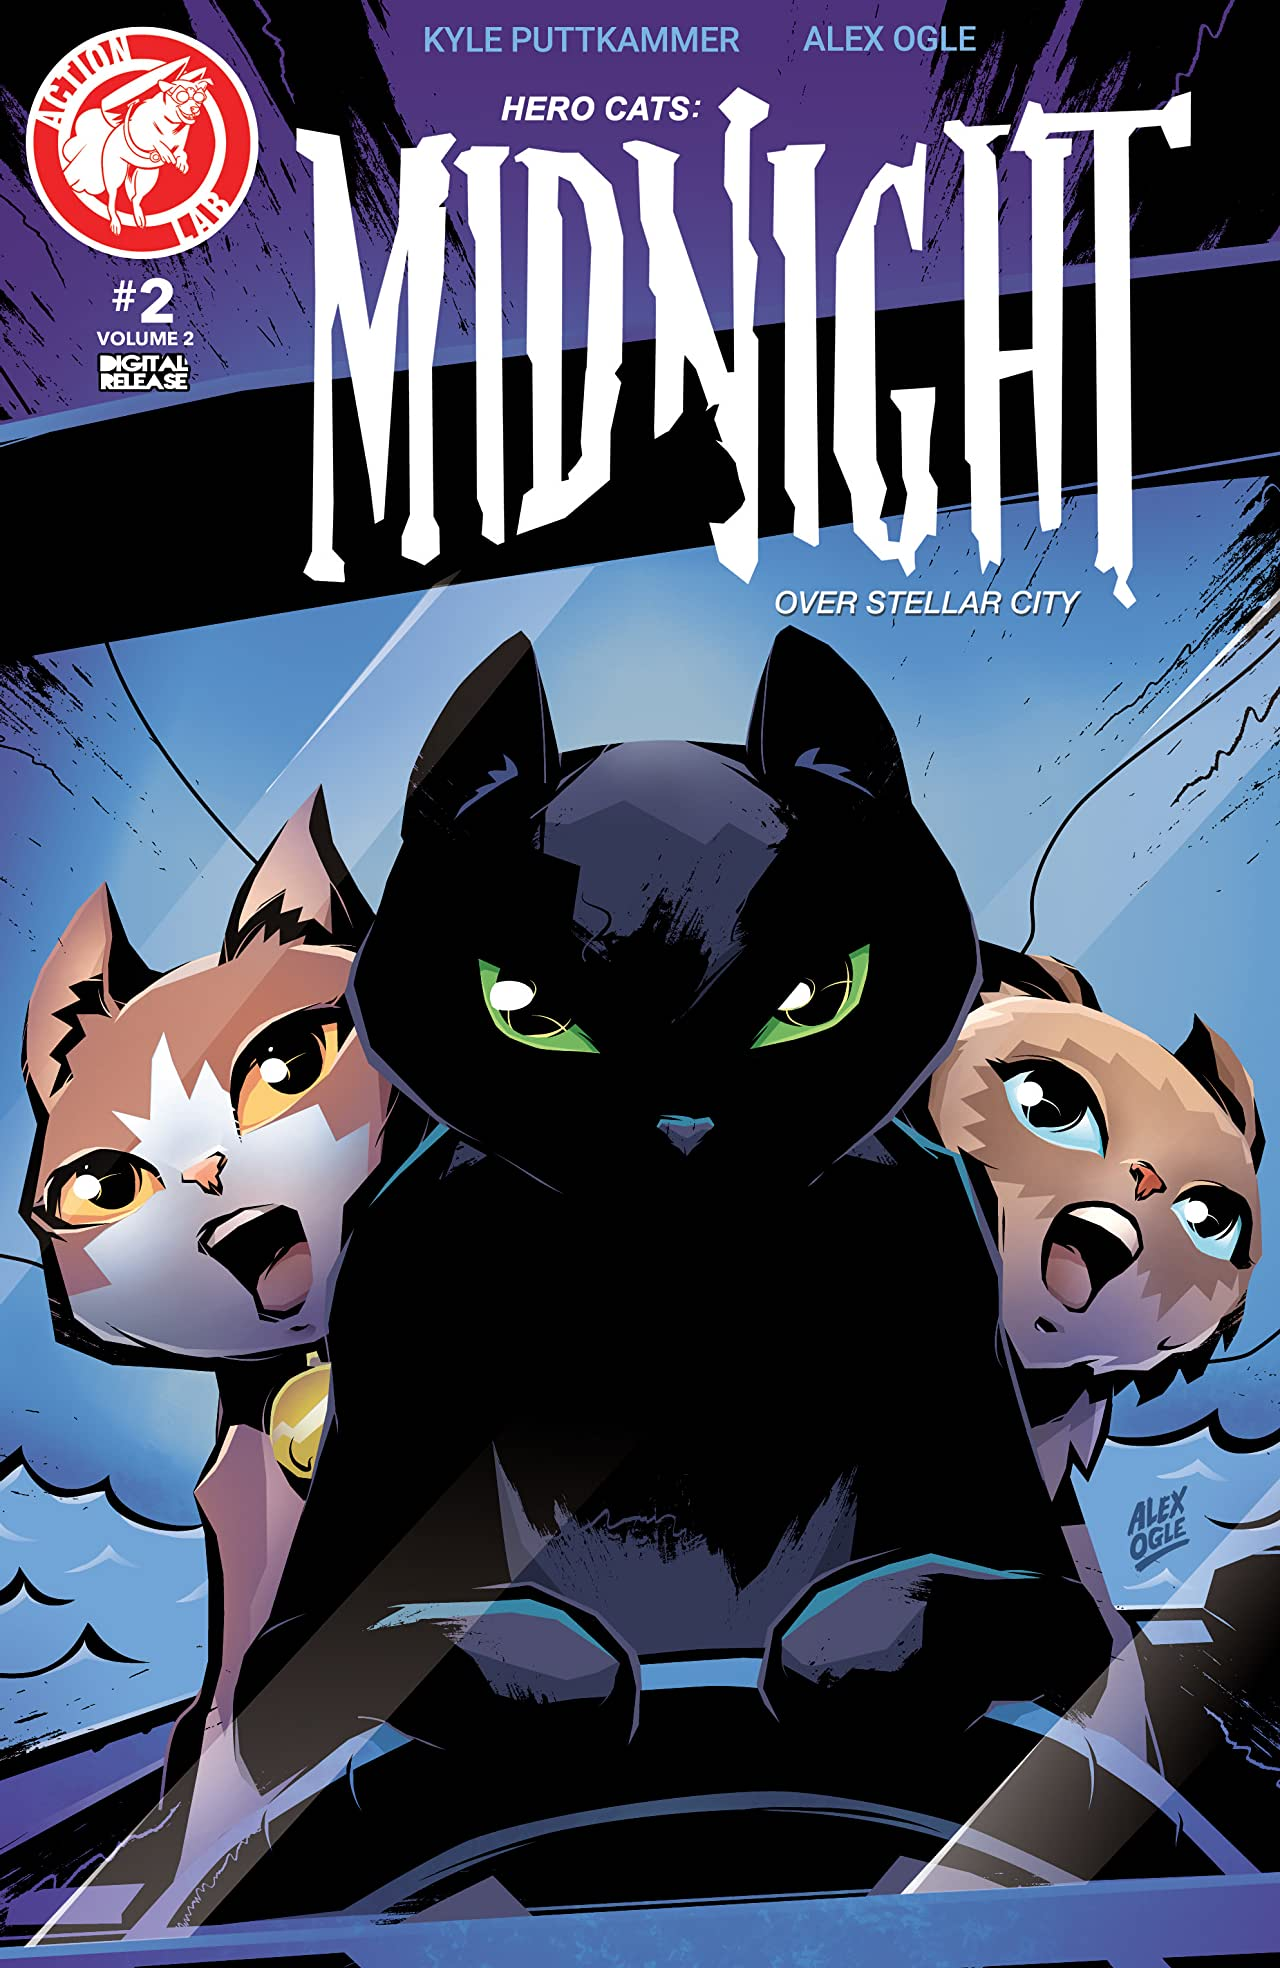 Hero Cats: Midnight Over Stellar City Vol. 2 #2